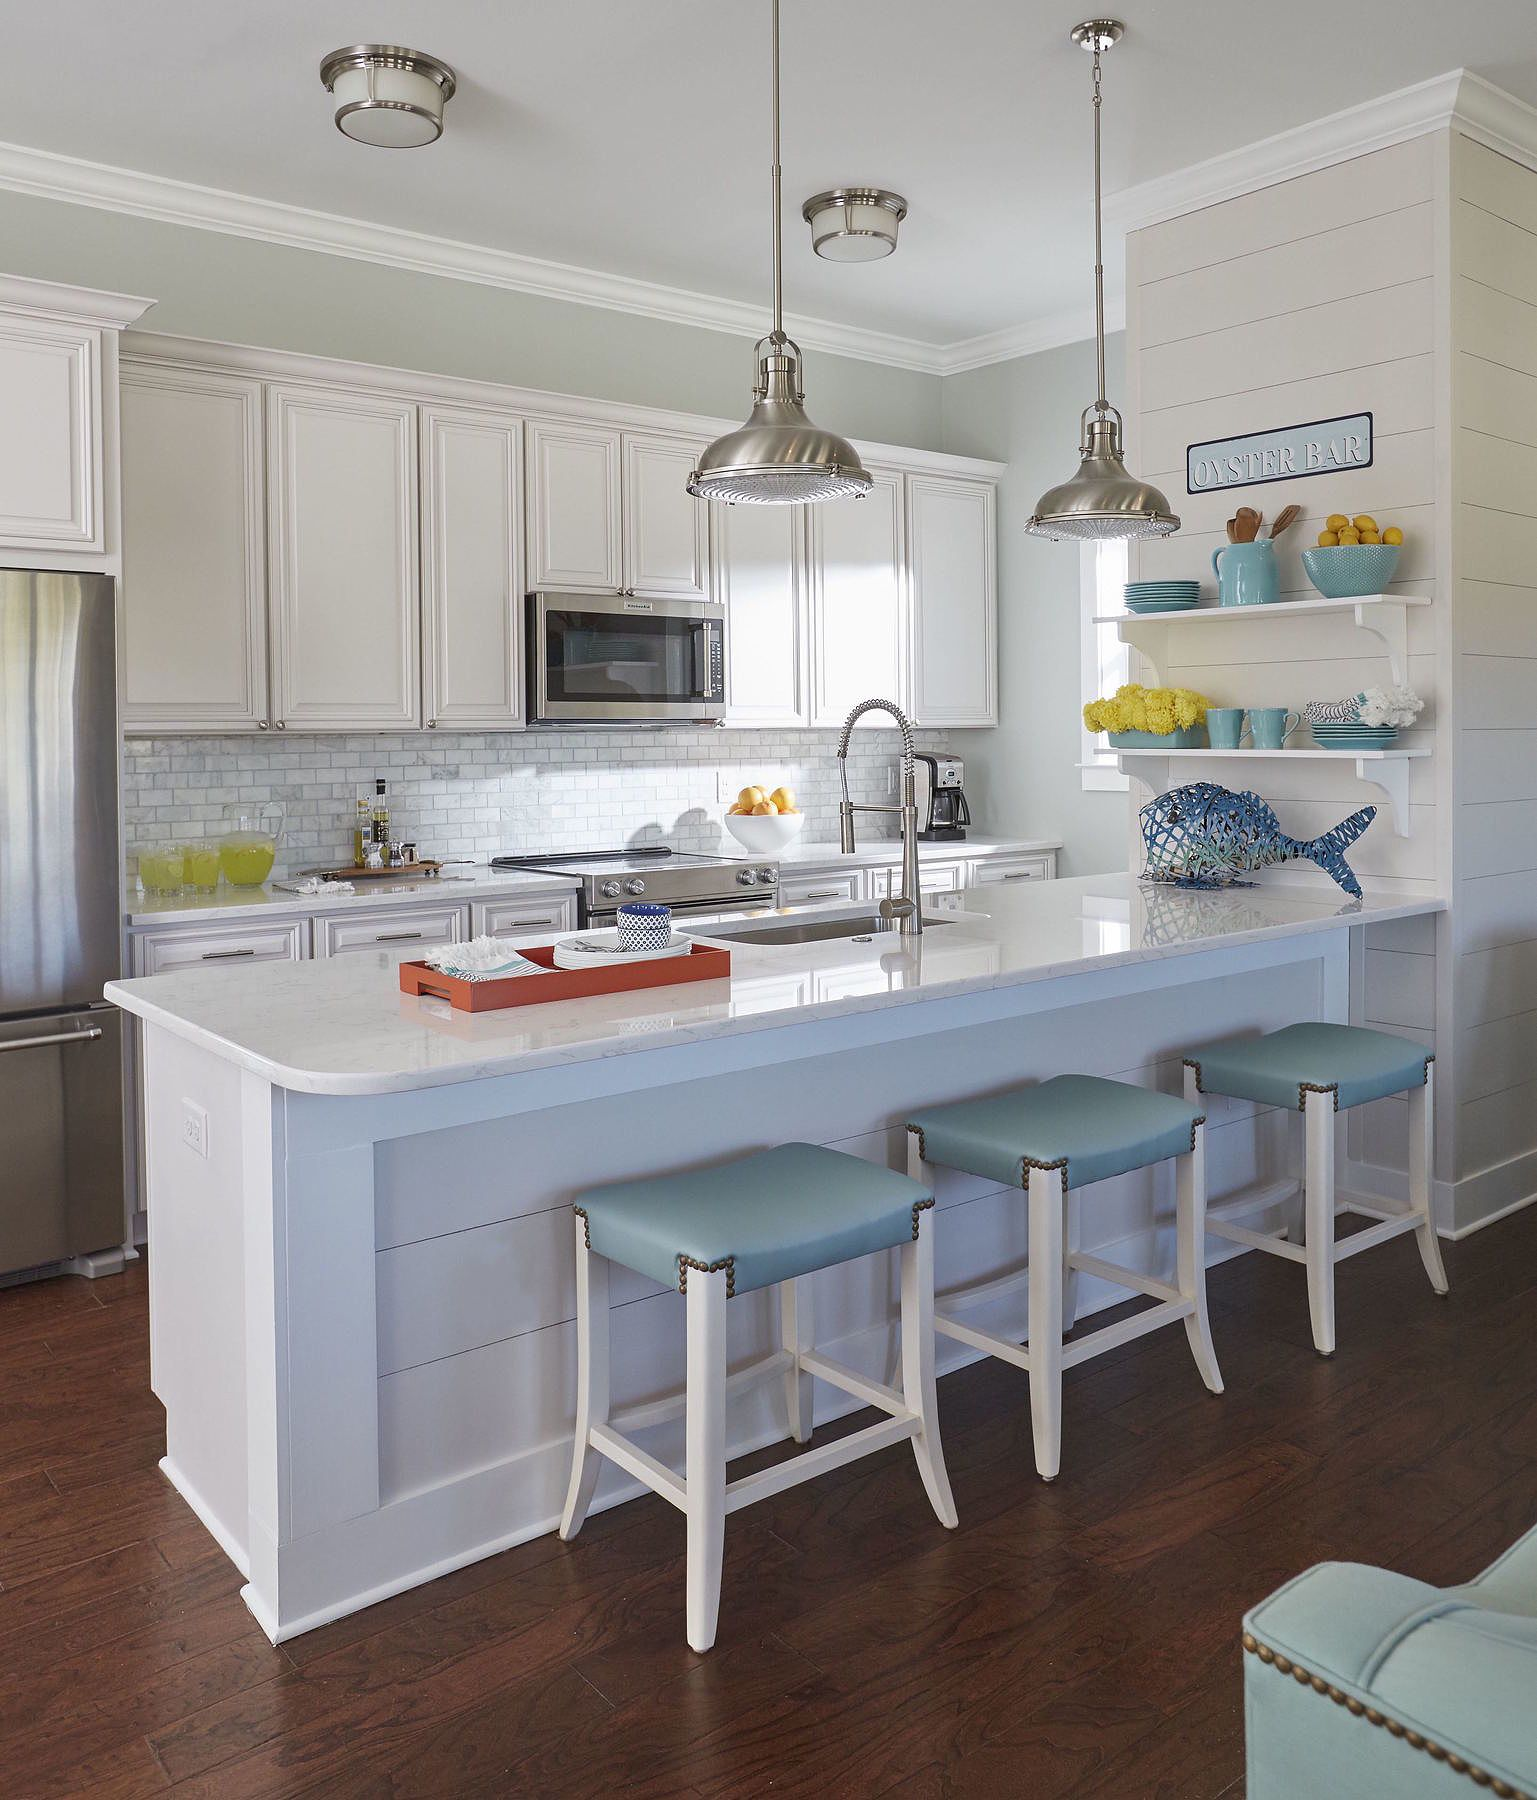 Cottage Kitchen Remodel On A Budget: Beach House On A Budget: Affordable Style Has Never Looked